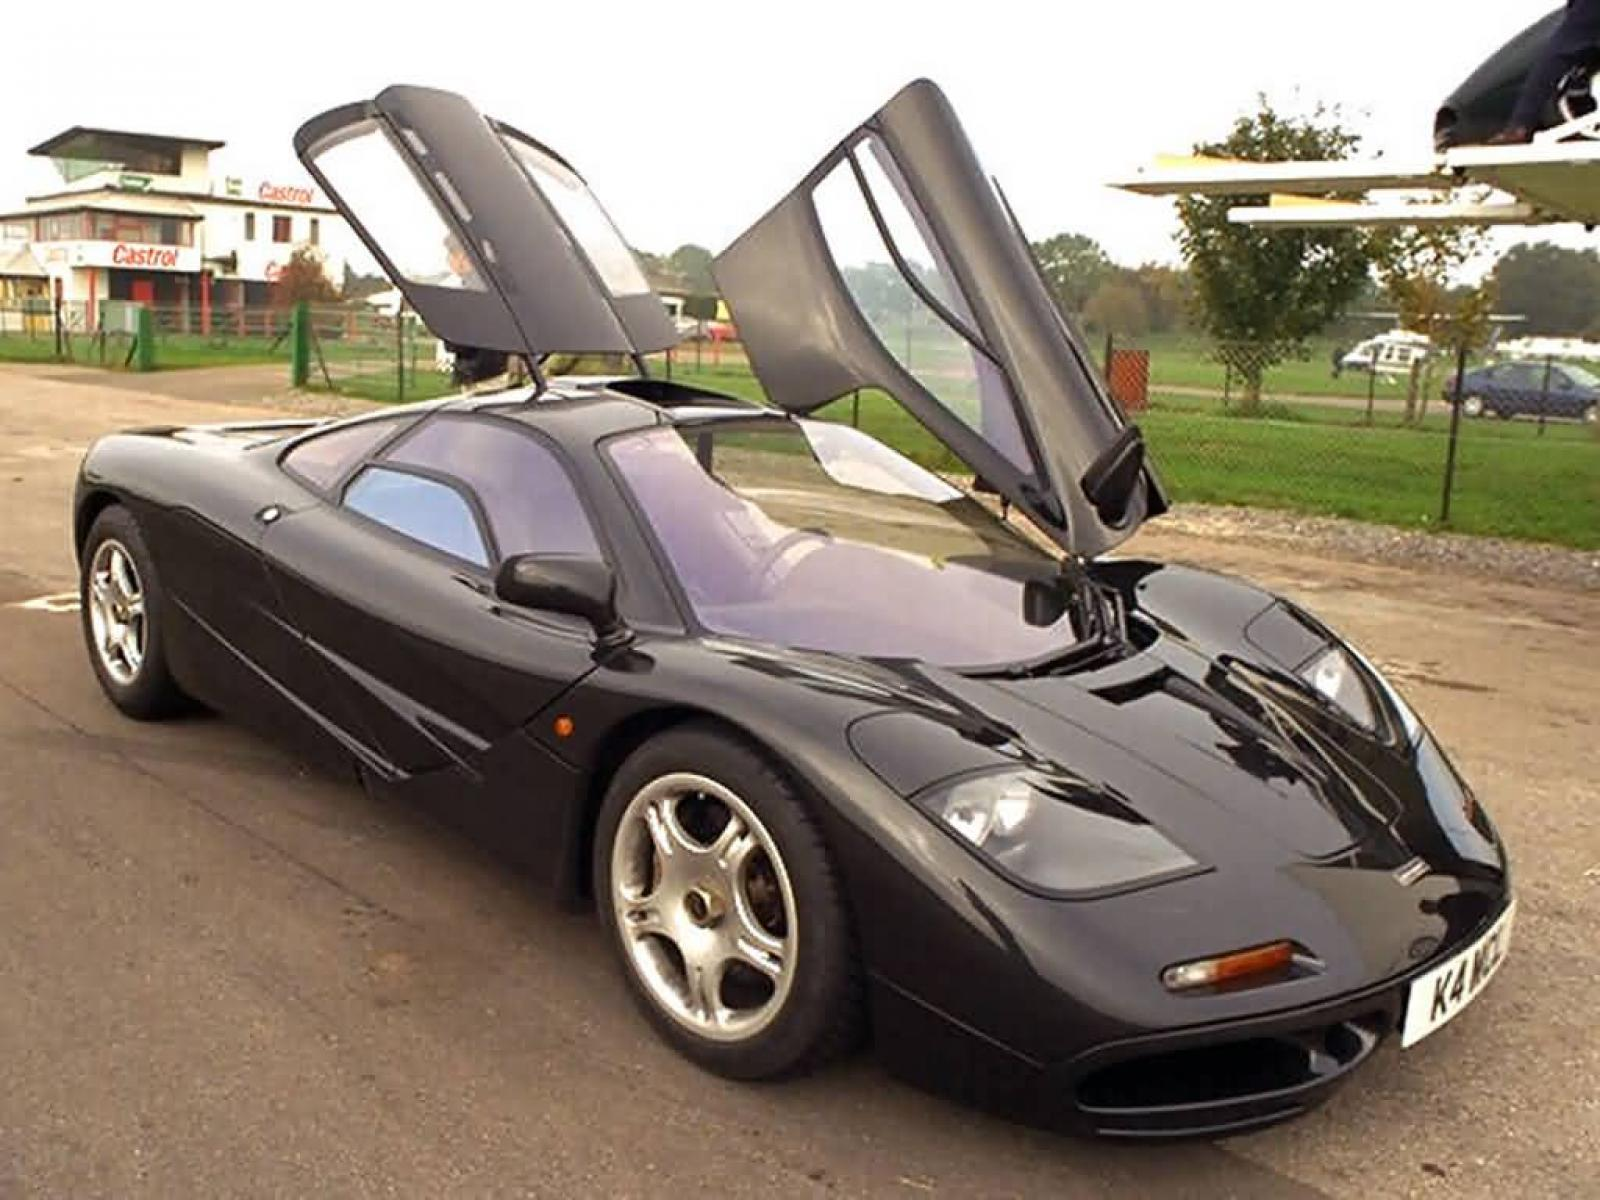 2004 toyota mr2 spyder information and photos zombiedrive. Black Bedroom Furniture Sets. Home Design Ideas